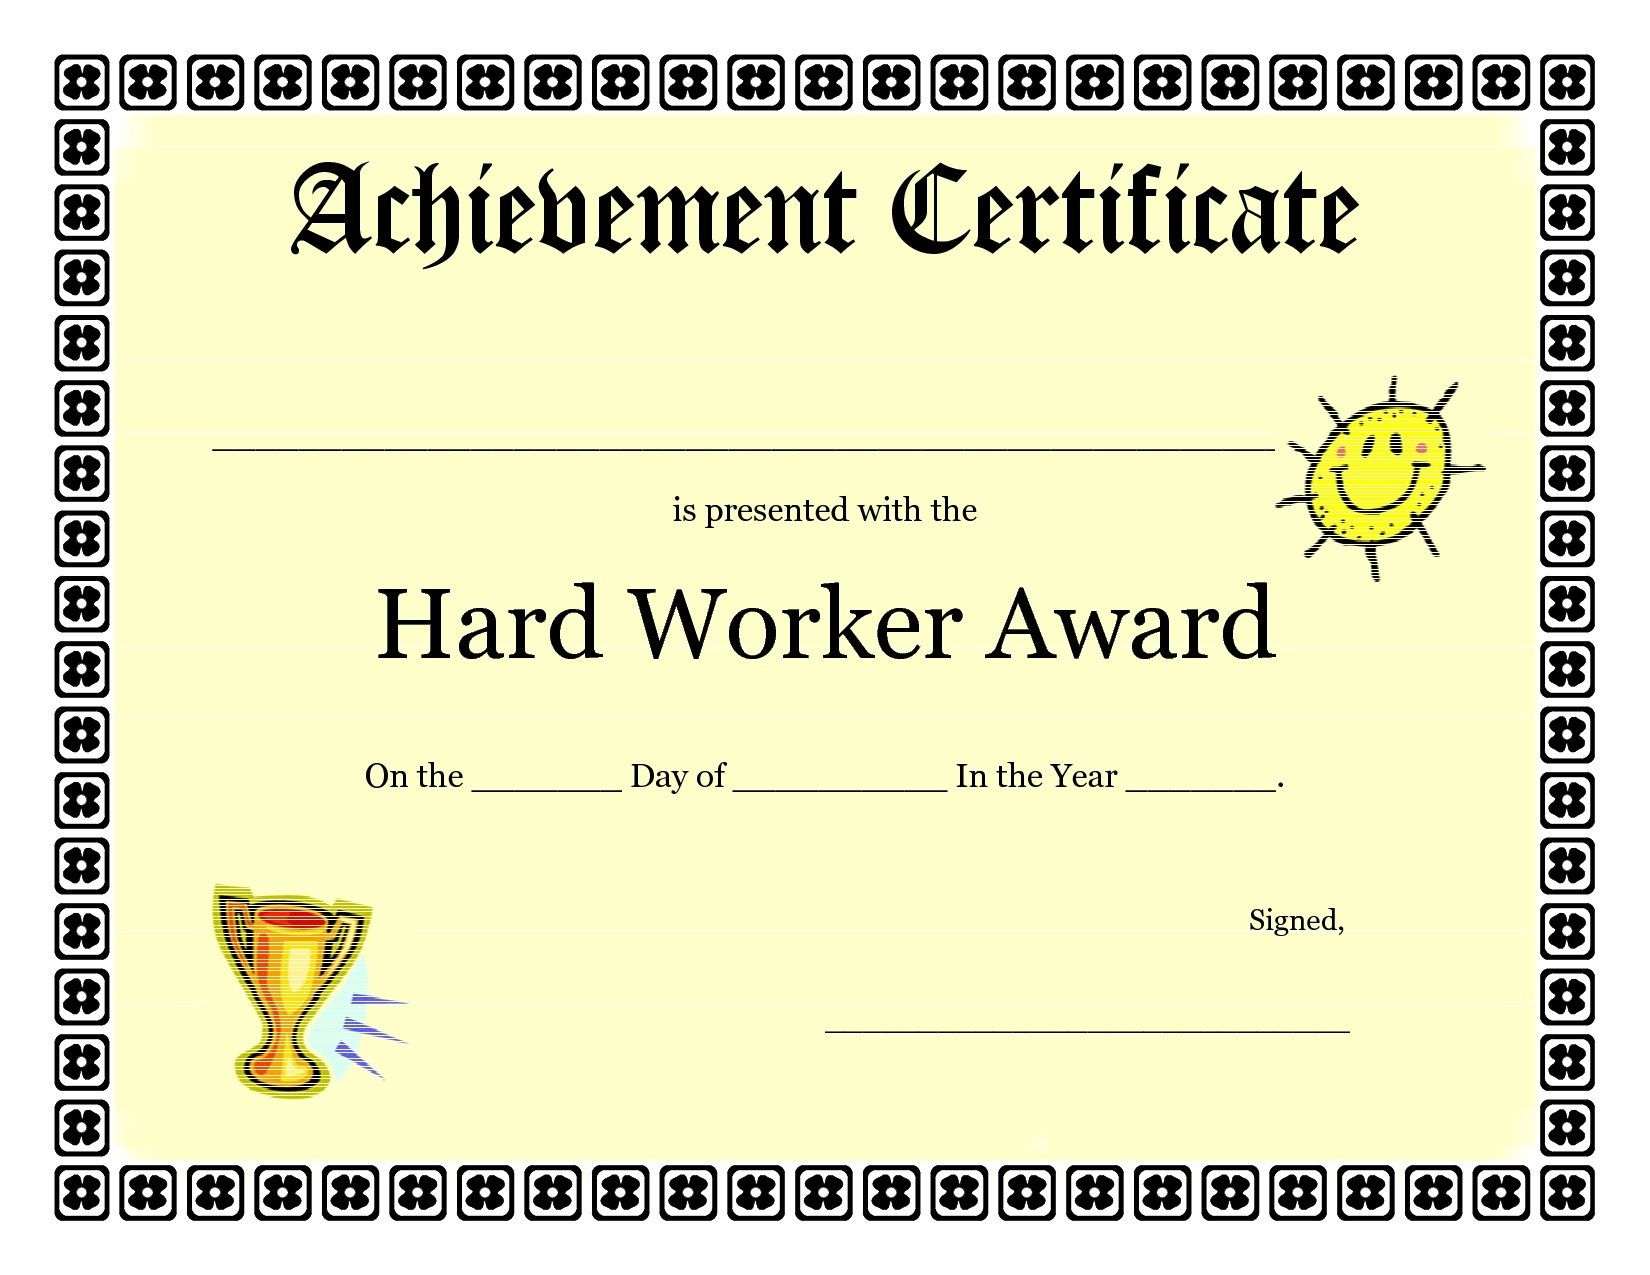 Free Vbs Certificate Templates New Printable Achievement - Free Printable Children's Certificates Templates